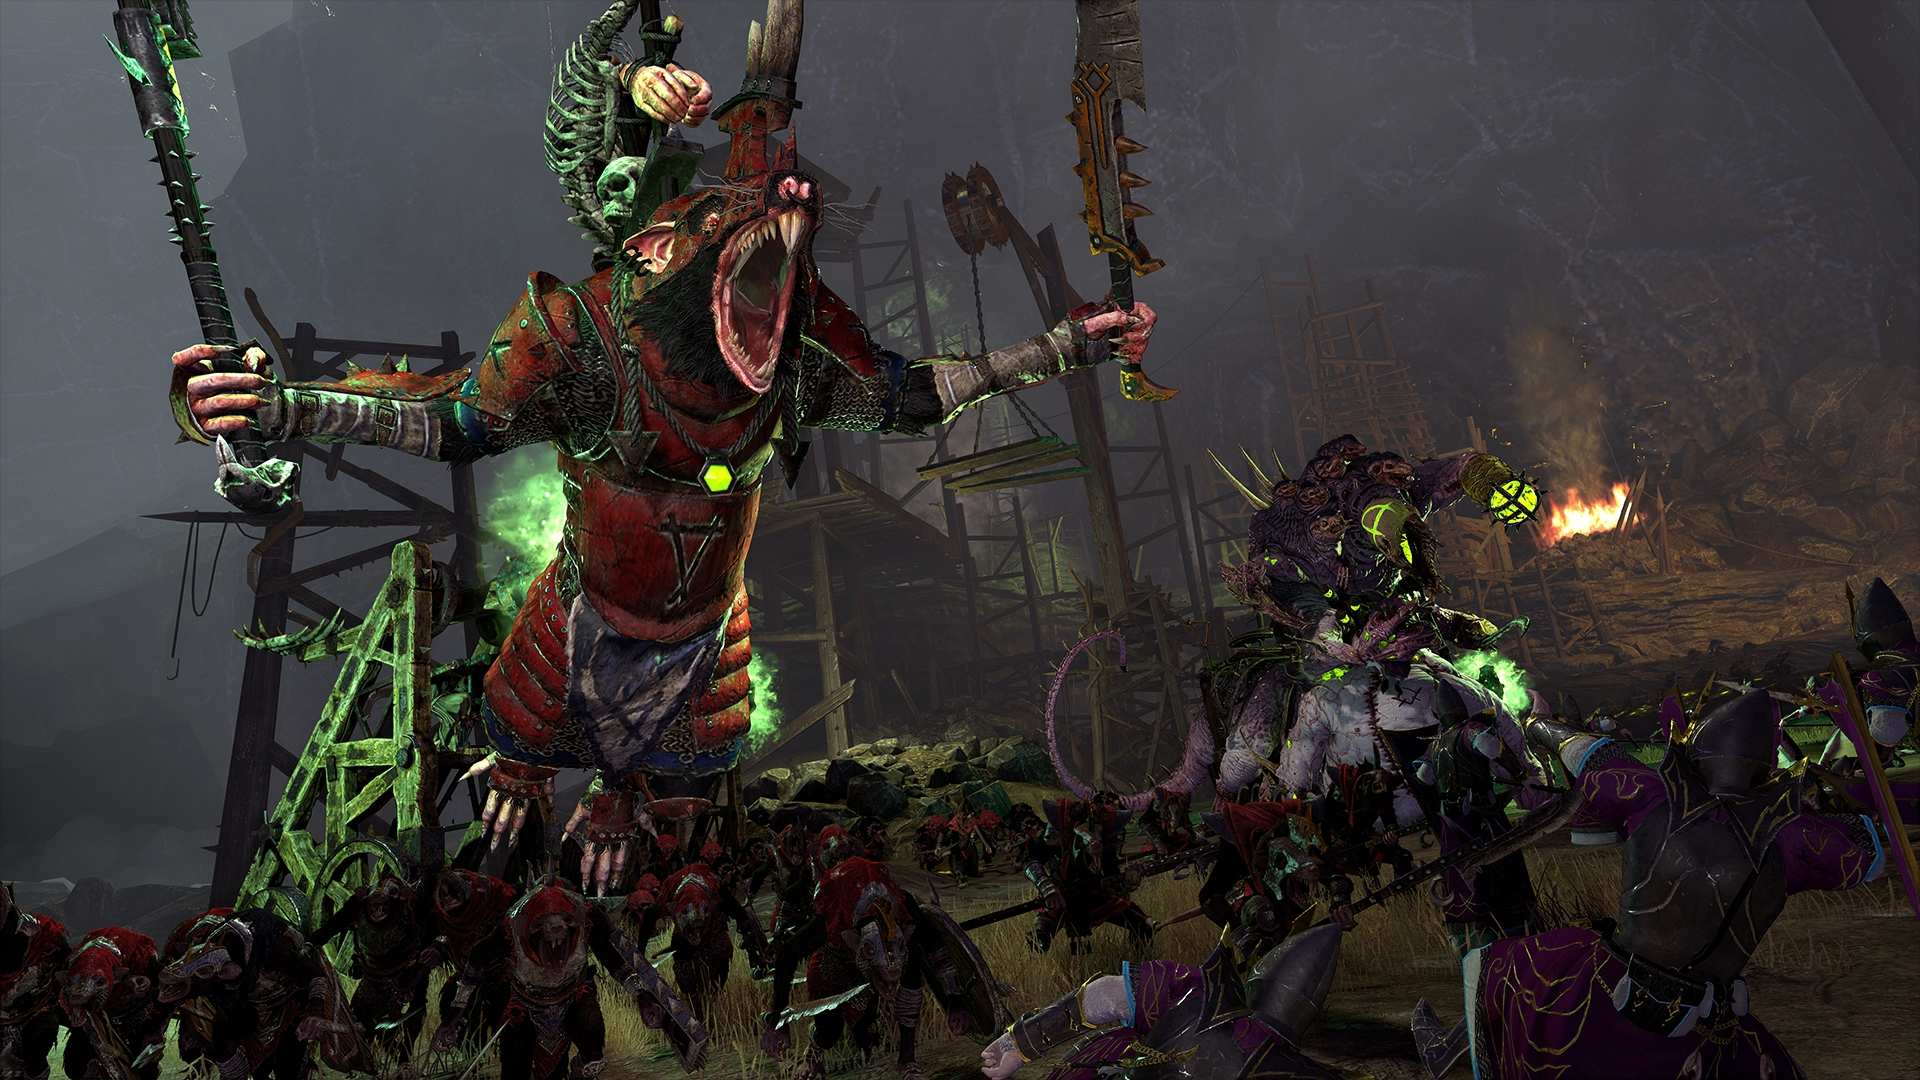 Total War Warhammer Ii First Impressions Exploring The New World